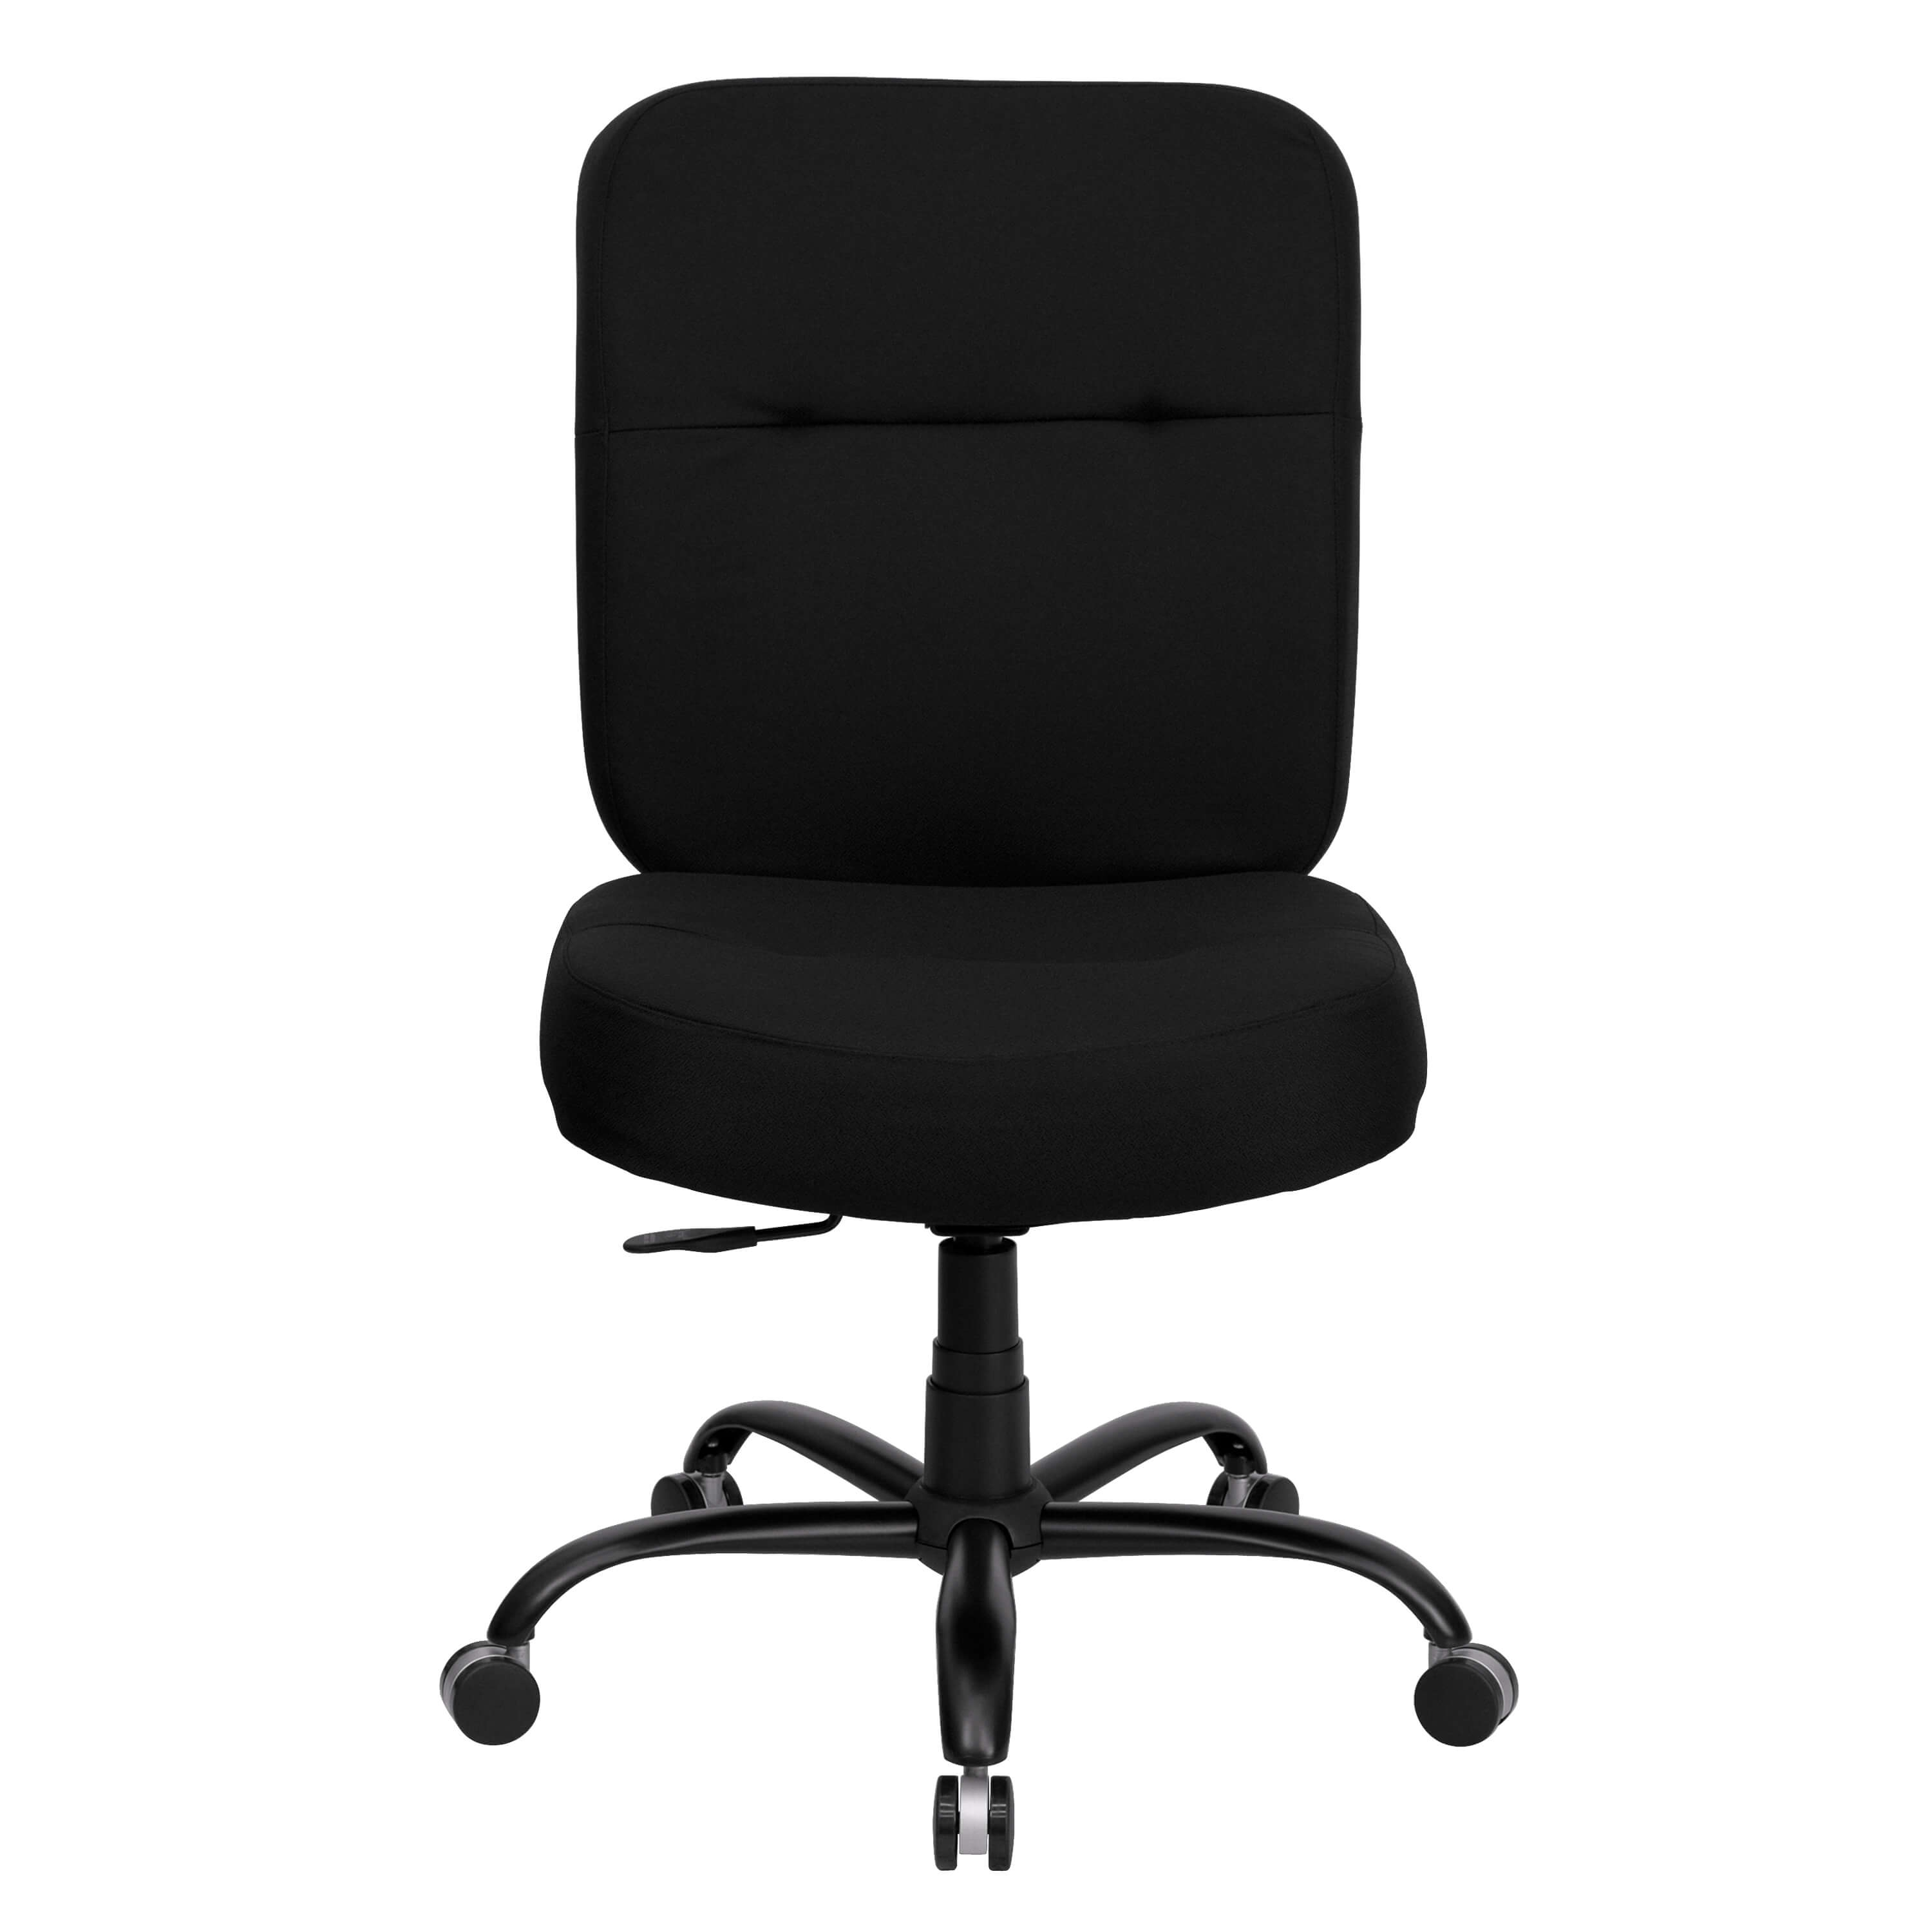 High weight capacity office chair front view